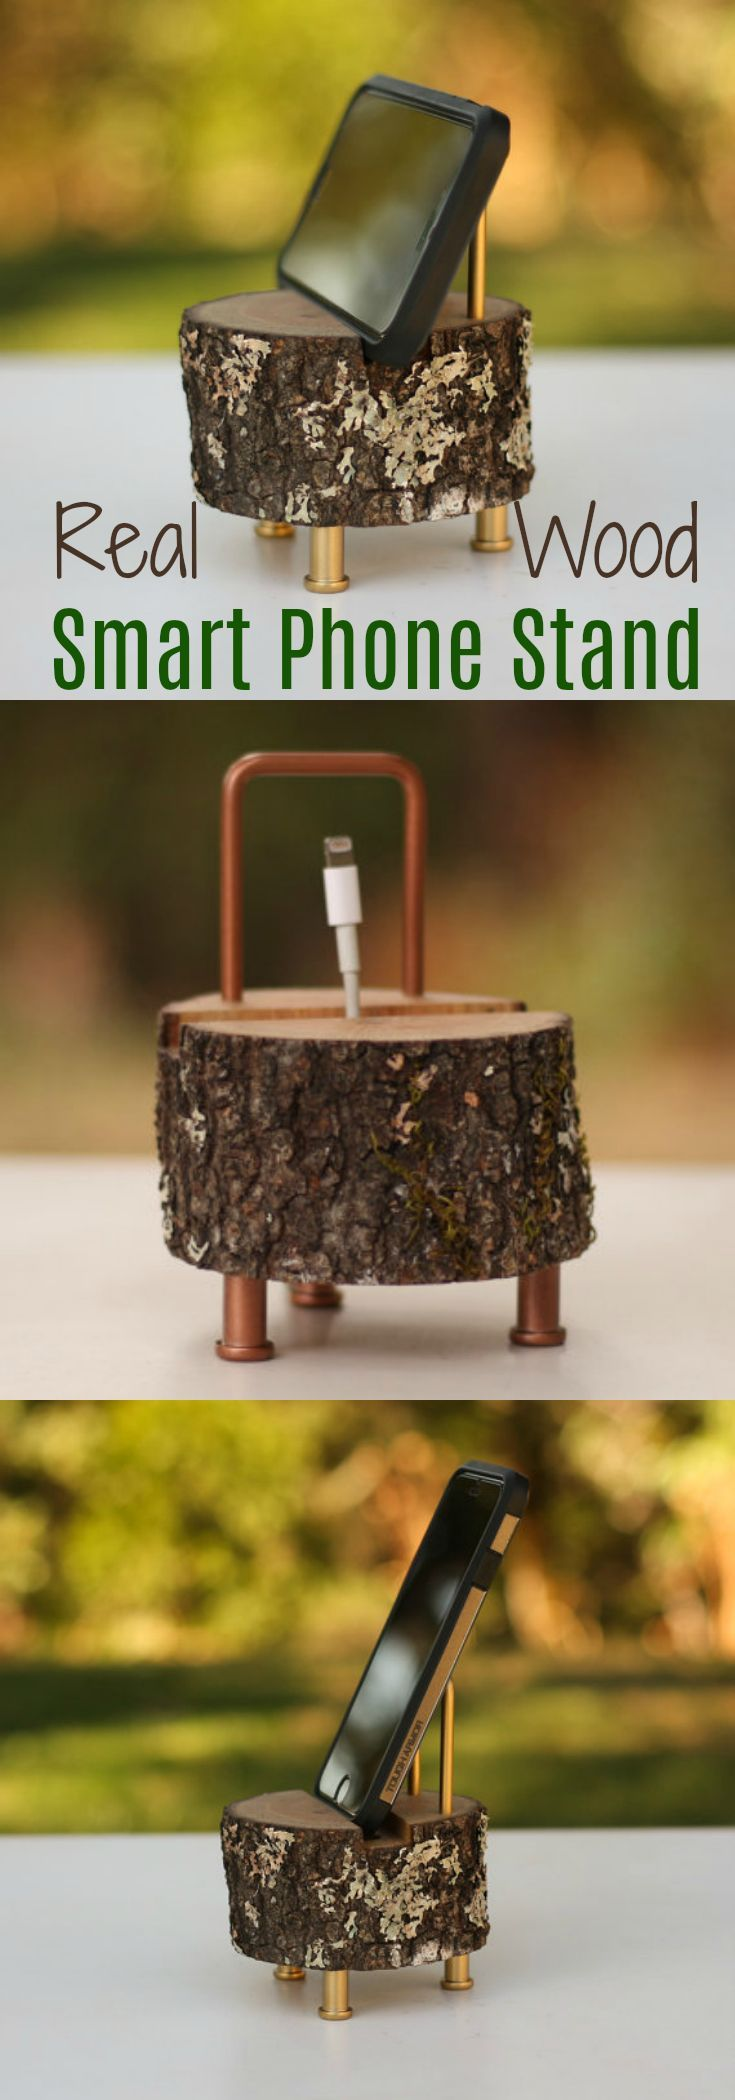 Rustic Smart Phone Stand Iphone 7 Iphone 6 Iphone 5 Charging Station Sound Amplifier Log charging Dock Wood Dock Cell Phone Dock Smart phone. Fabulous gift idea. Perfect cabin/rustic/log home decor. #smartphone #Loghome #rustic #Chargingstation